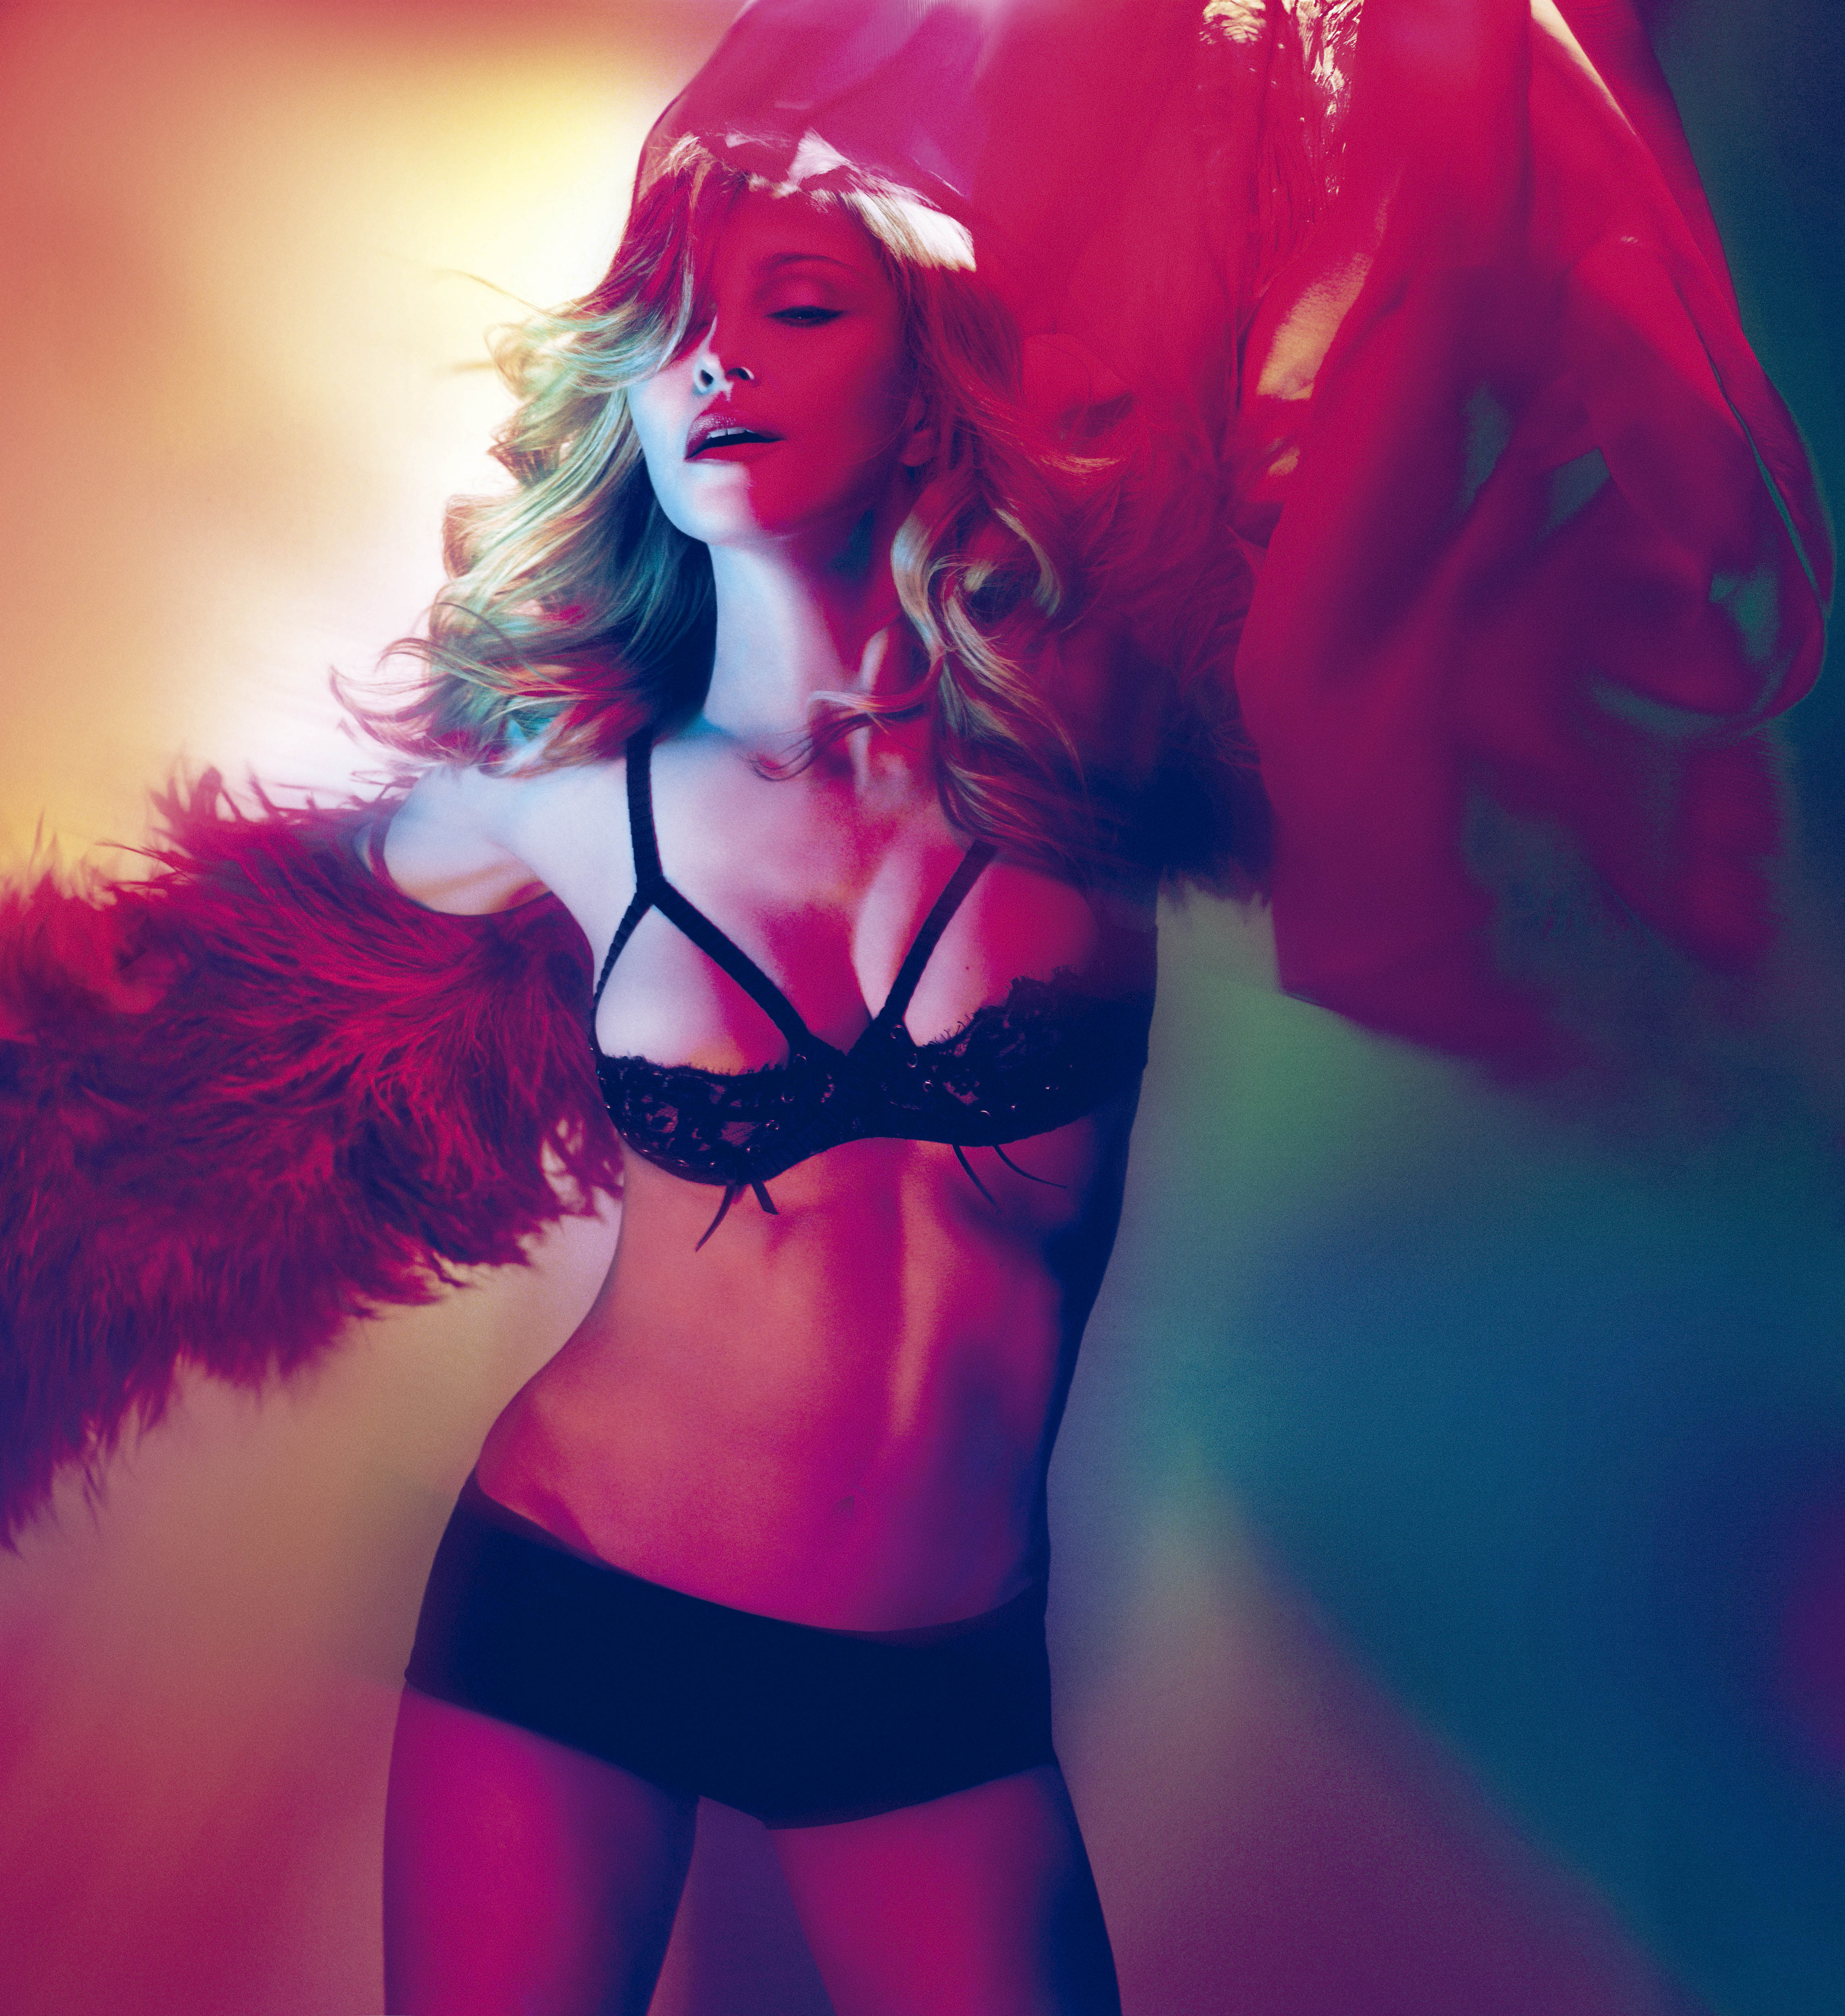 Madonna - Images Gallery | Images Exploration Top